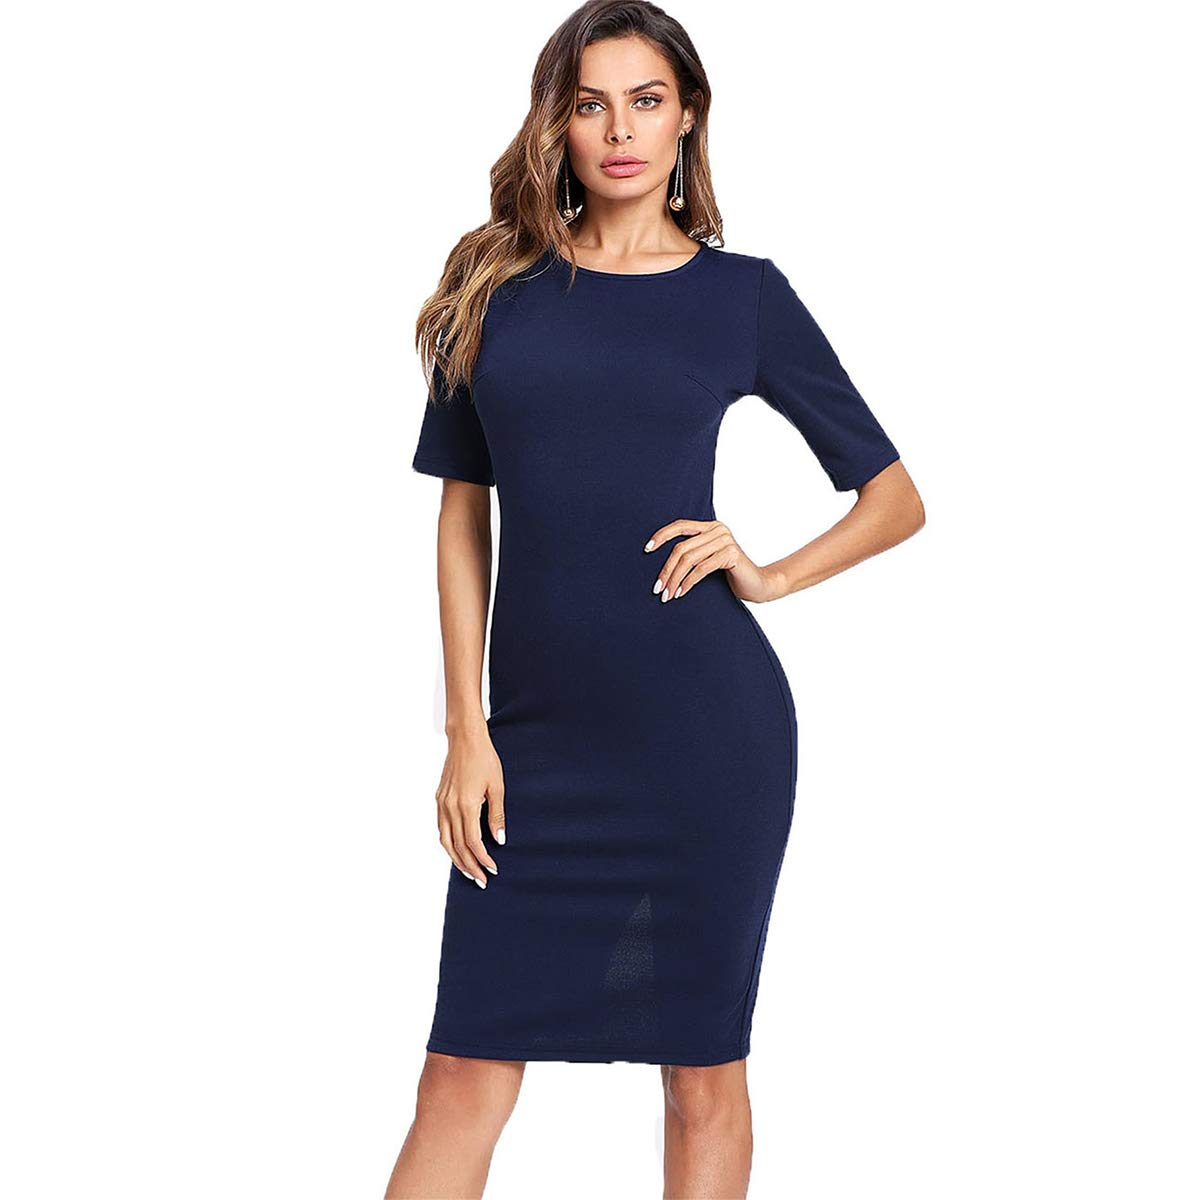 Navy SheIn Women's Short Sleeve Elegant Sheath Pencil Dress